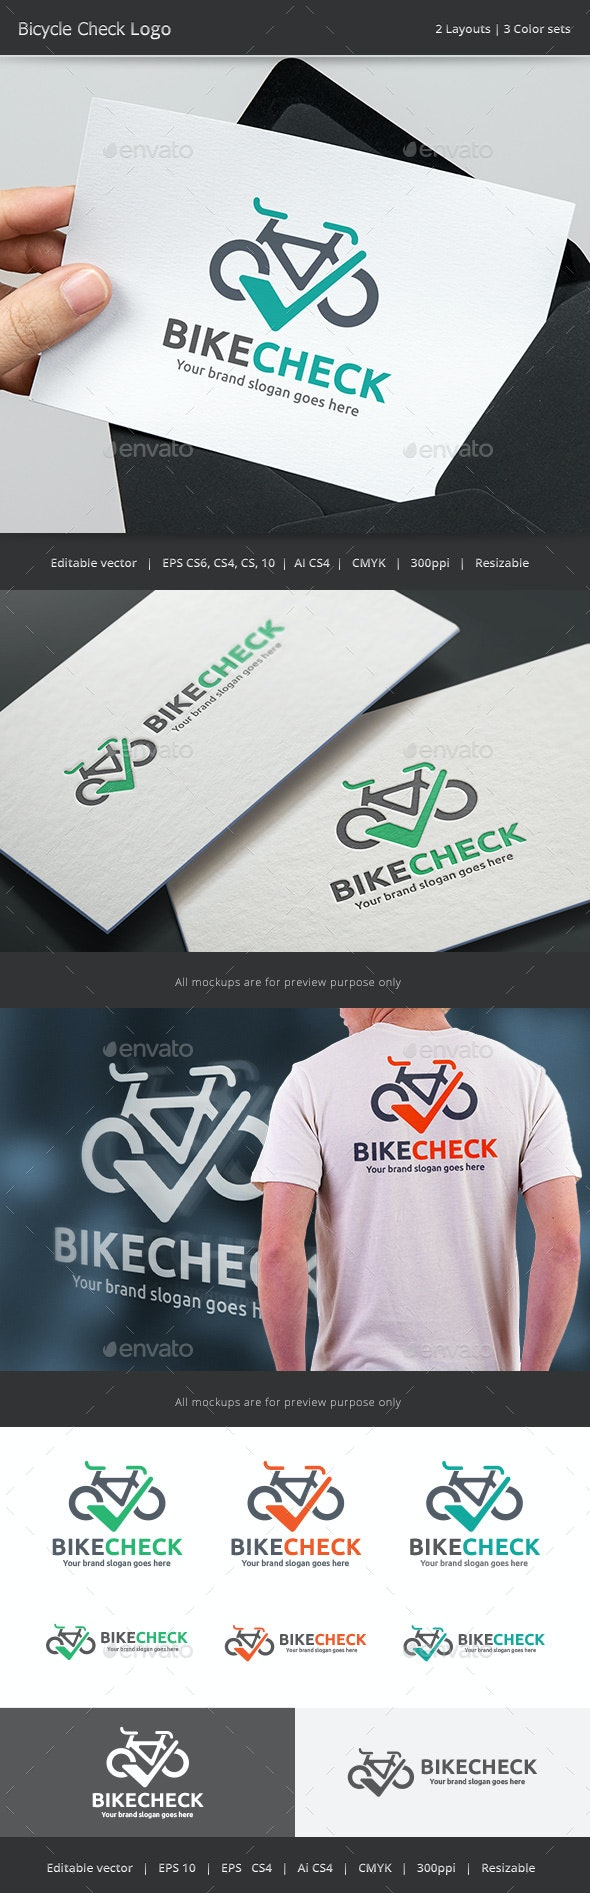 Bicycle Check Logo - Vector Abstract